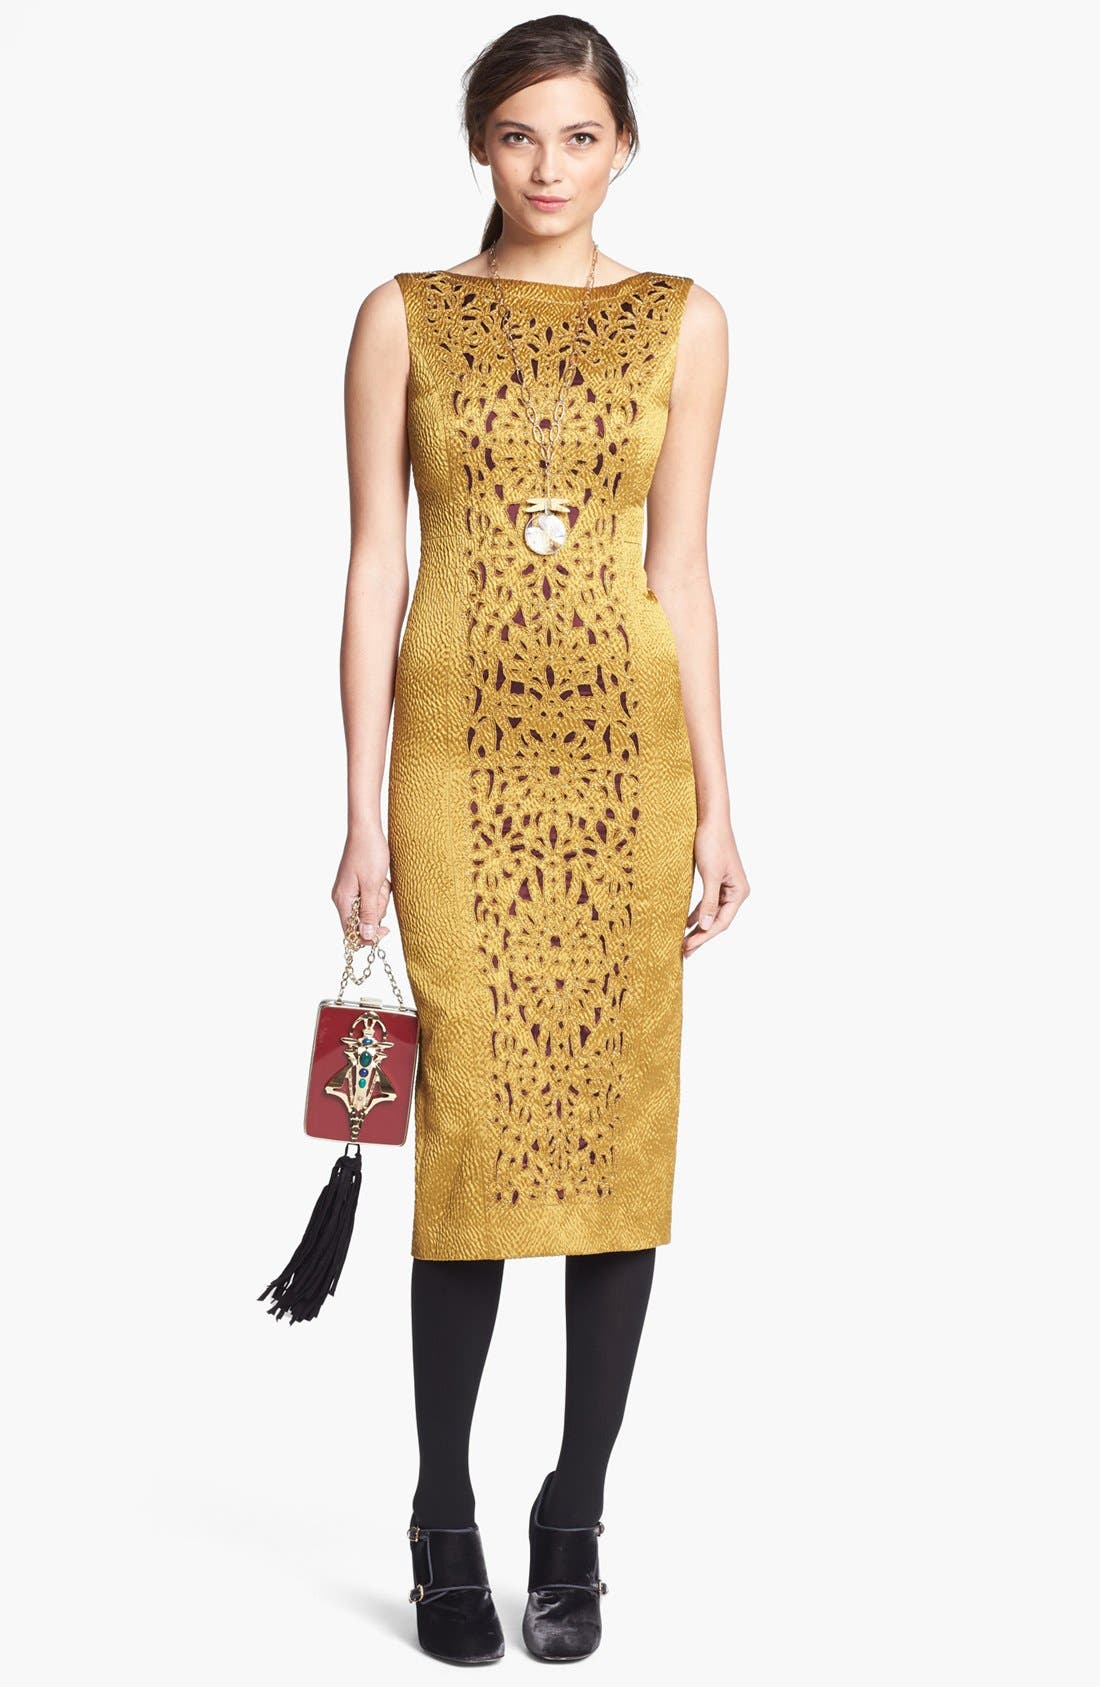 Main Image - Tory Burch Dress & Pump